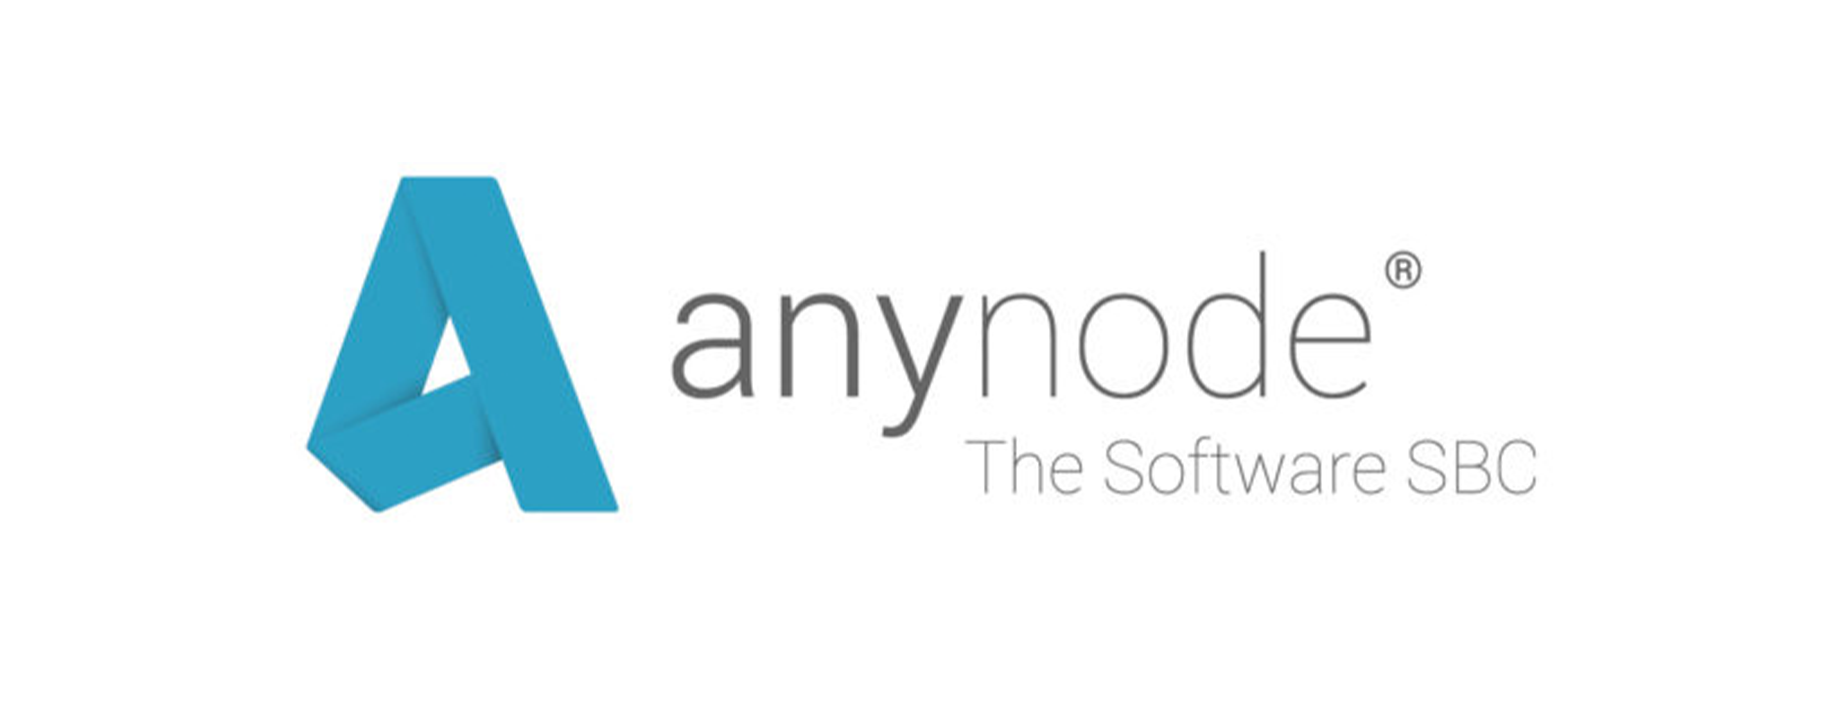 Session Border Controller anynode, Direct Routing Telefonie mit MS Teams